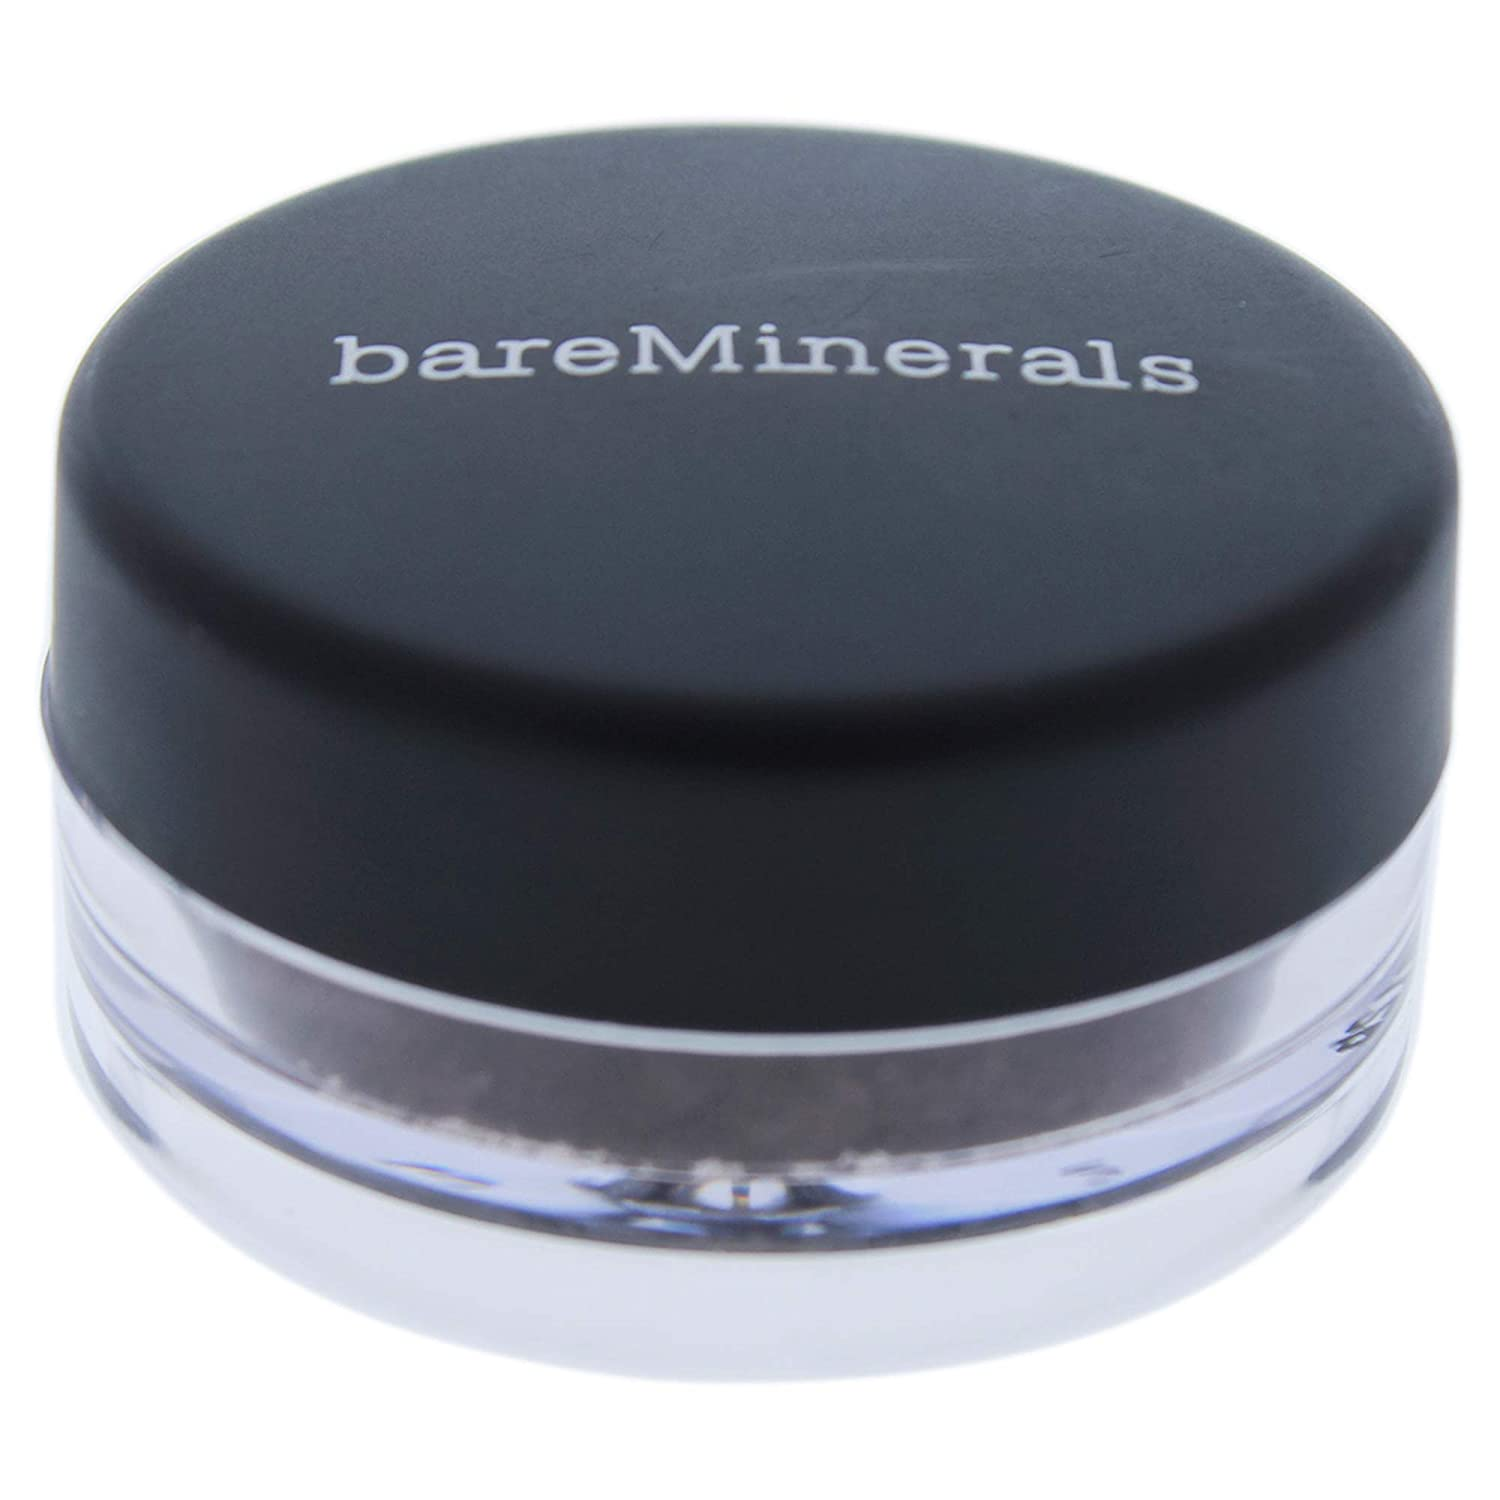 bareMinerals Eye color Motivate for Women, 0.02 Ounce